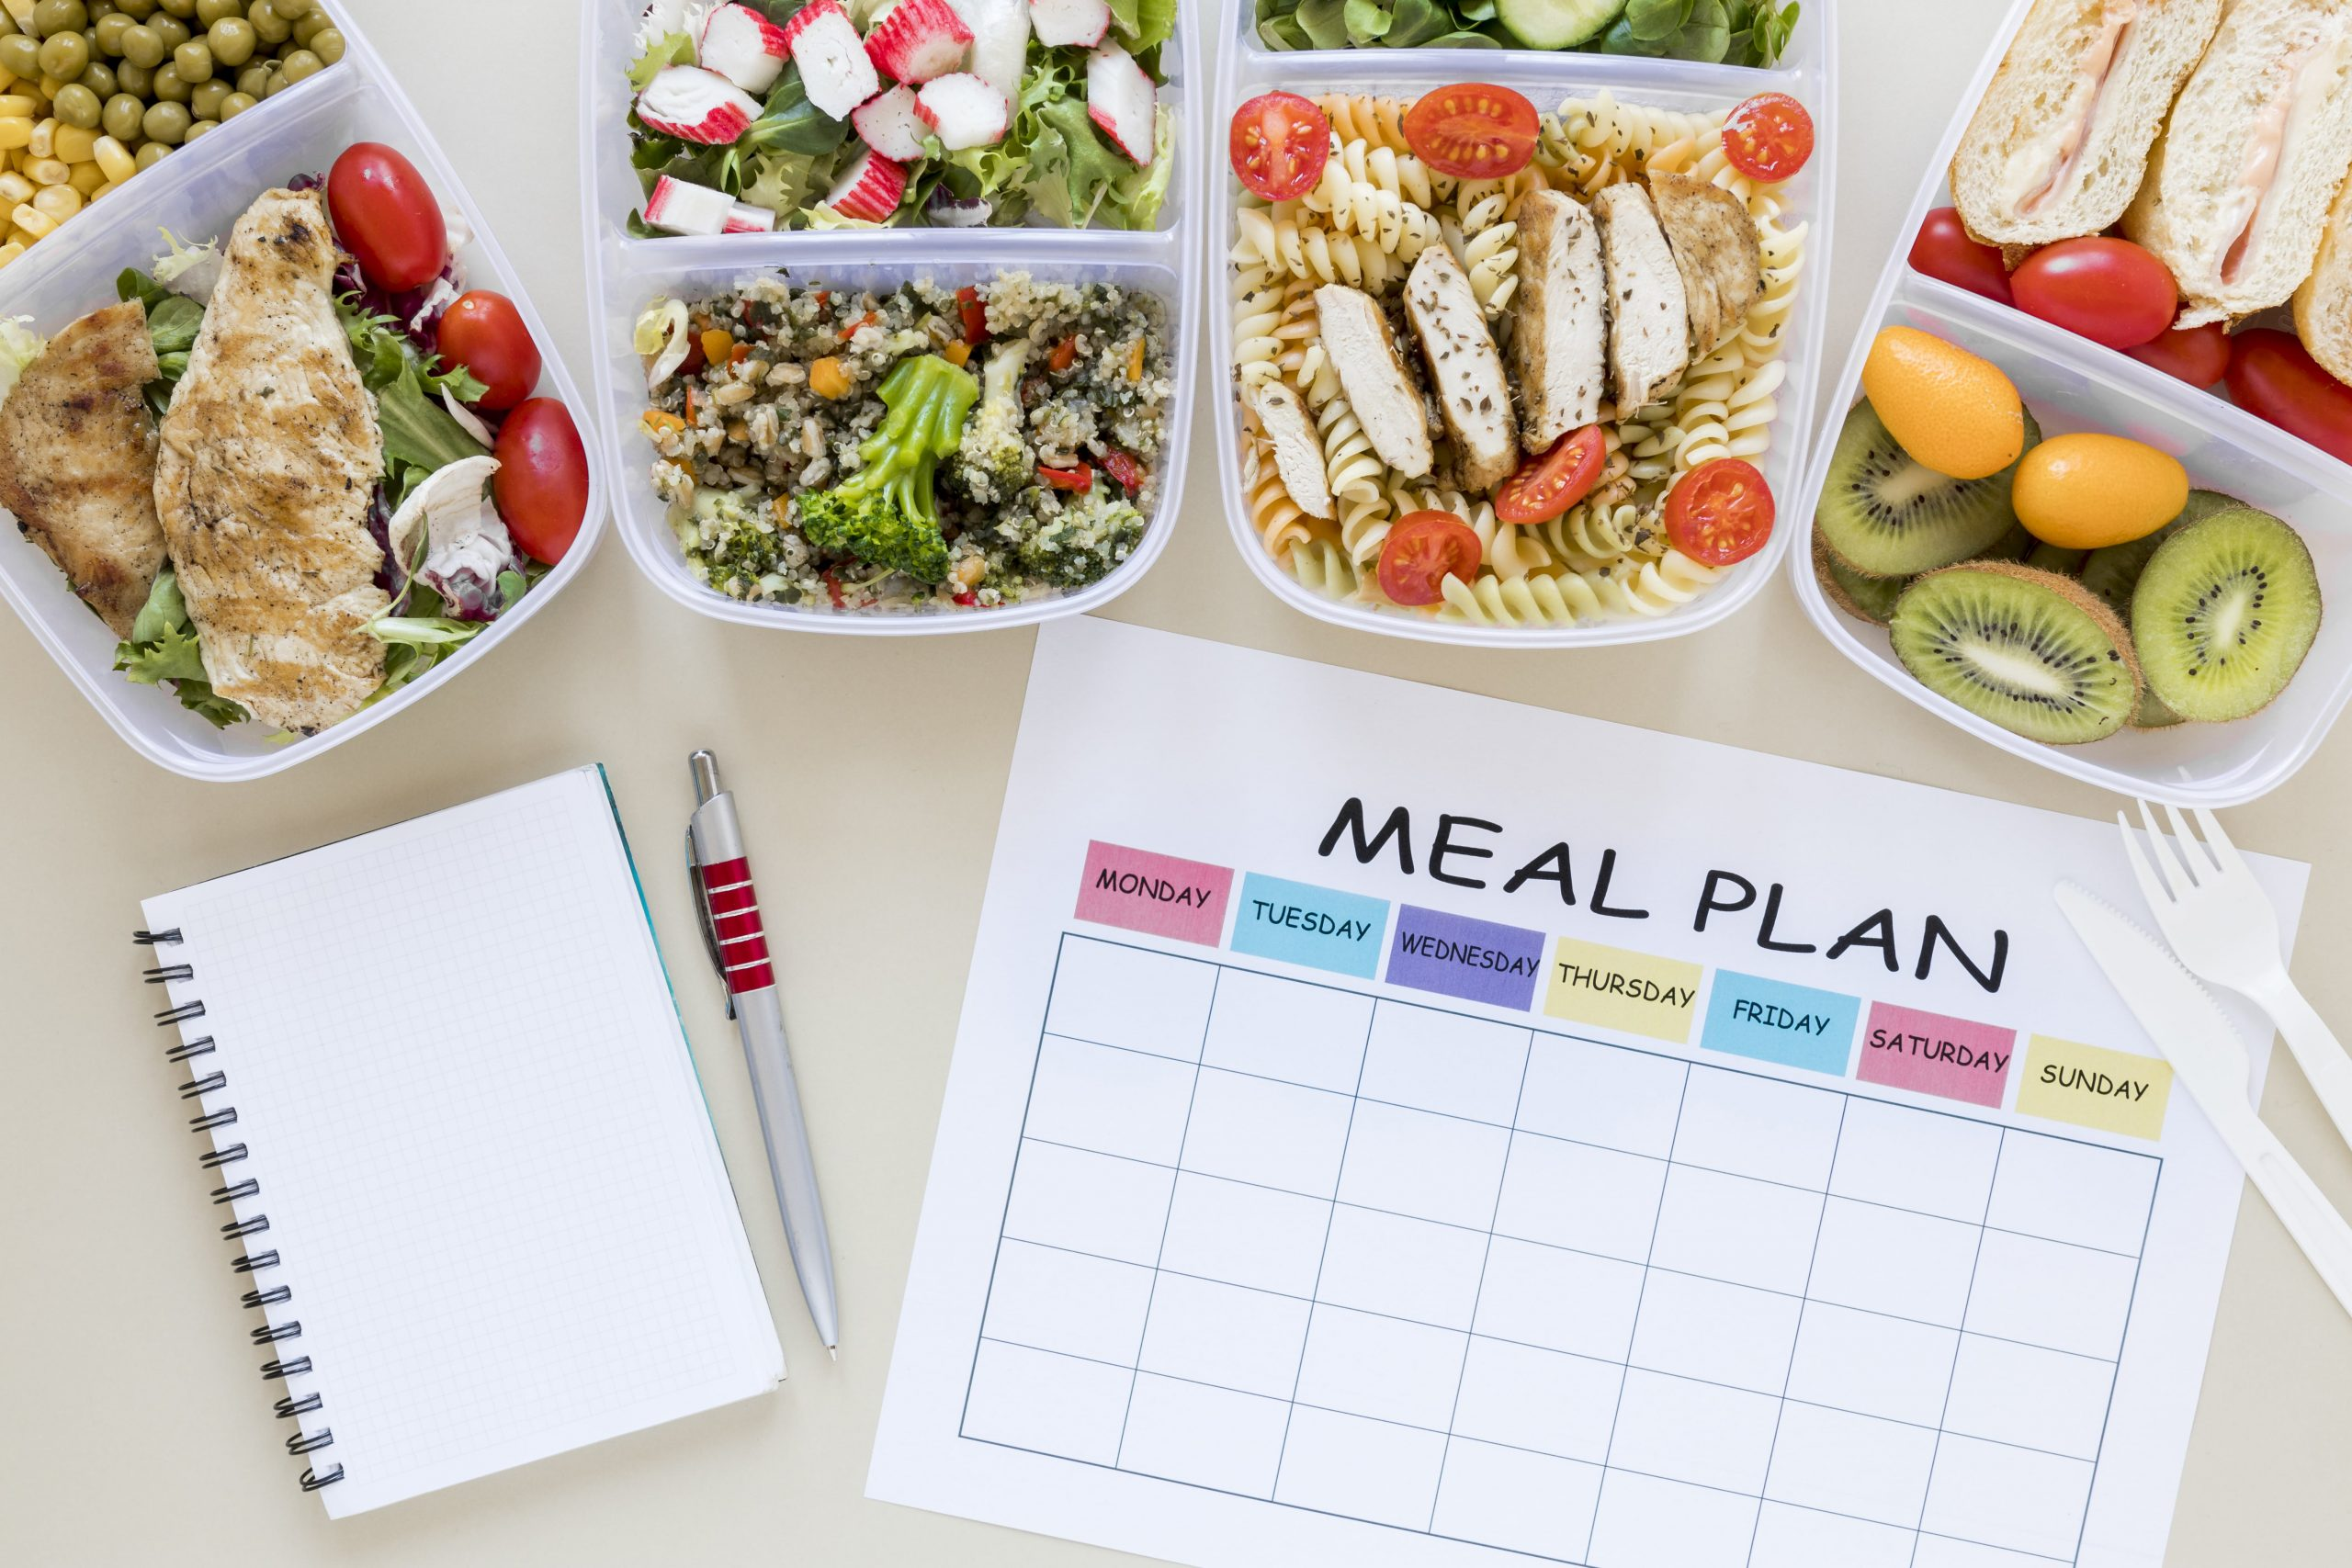 A Nutritionist should design a flexible meal plan, and use macro tracking to control client's nutritional needs.